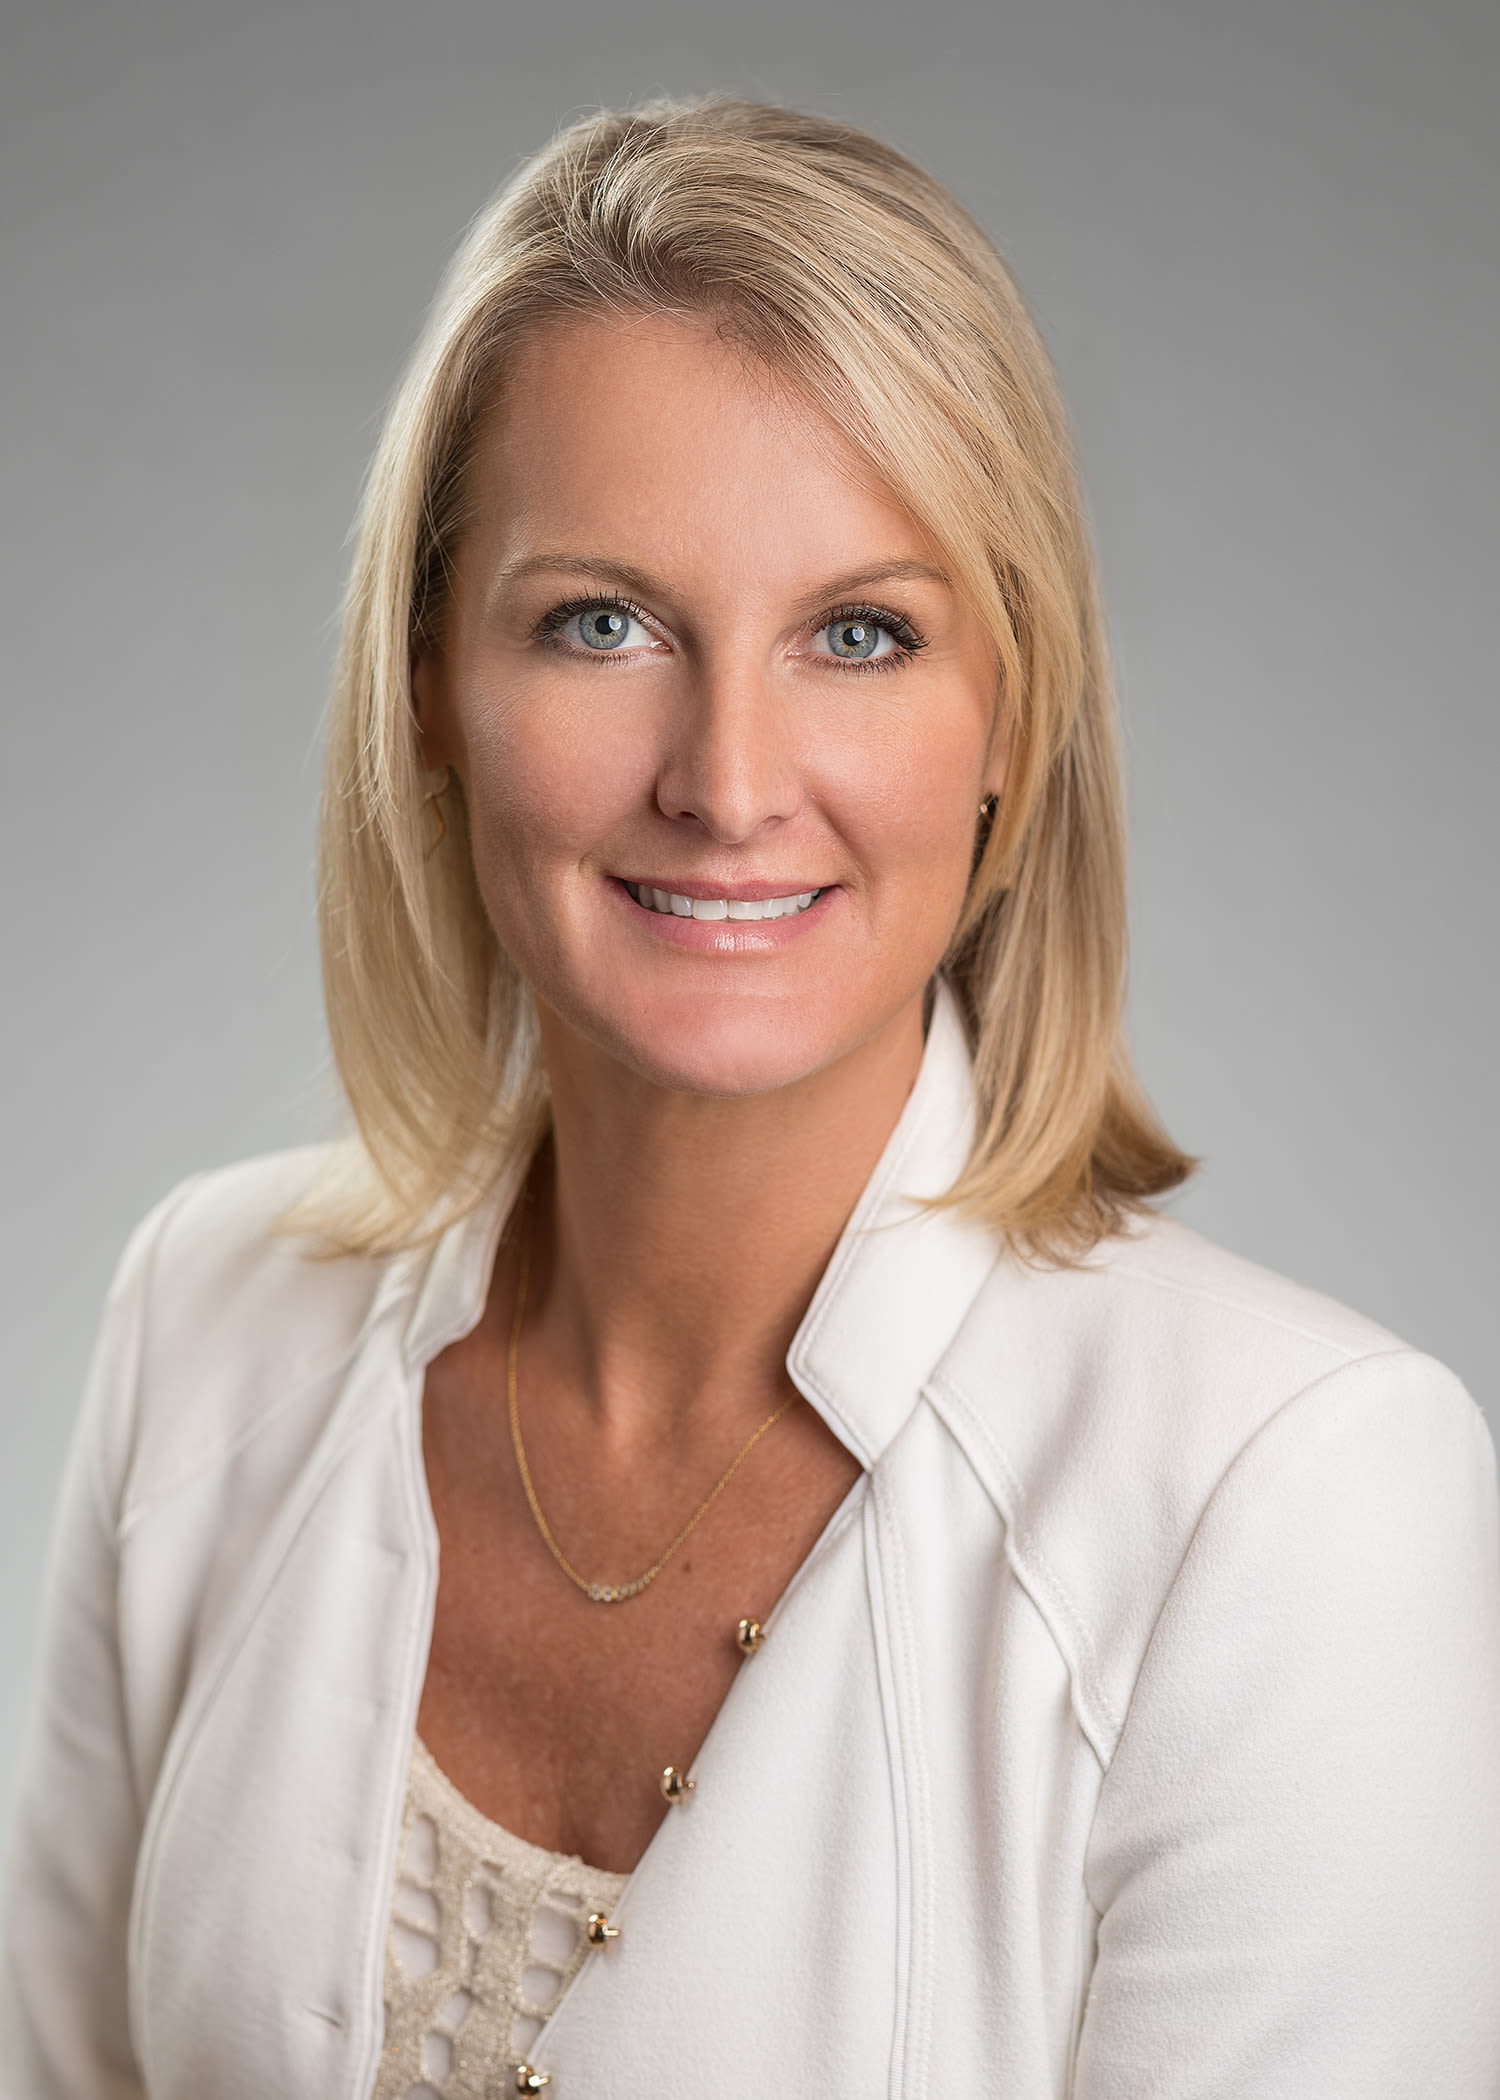 Stacey Bondar Executive Vice President of Asset Management